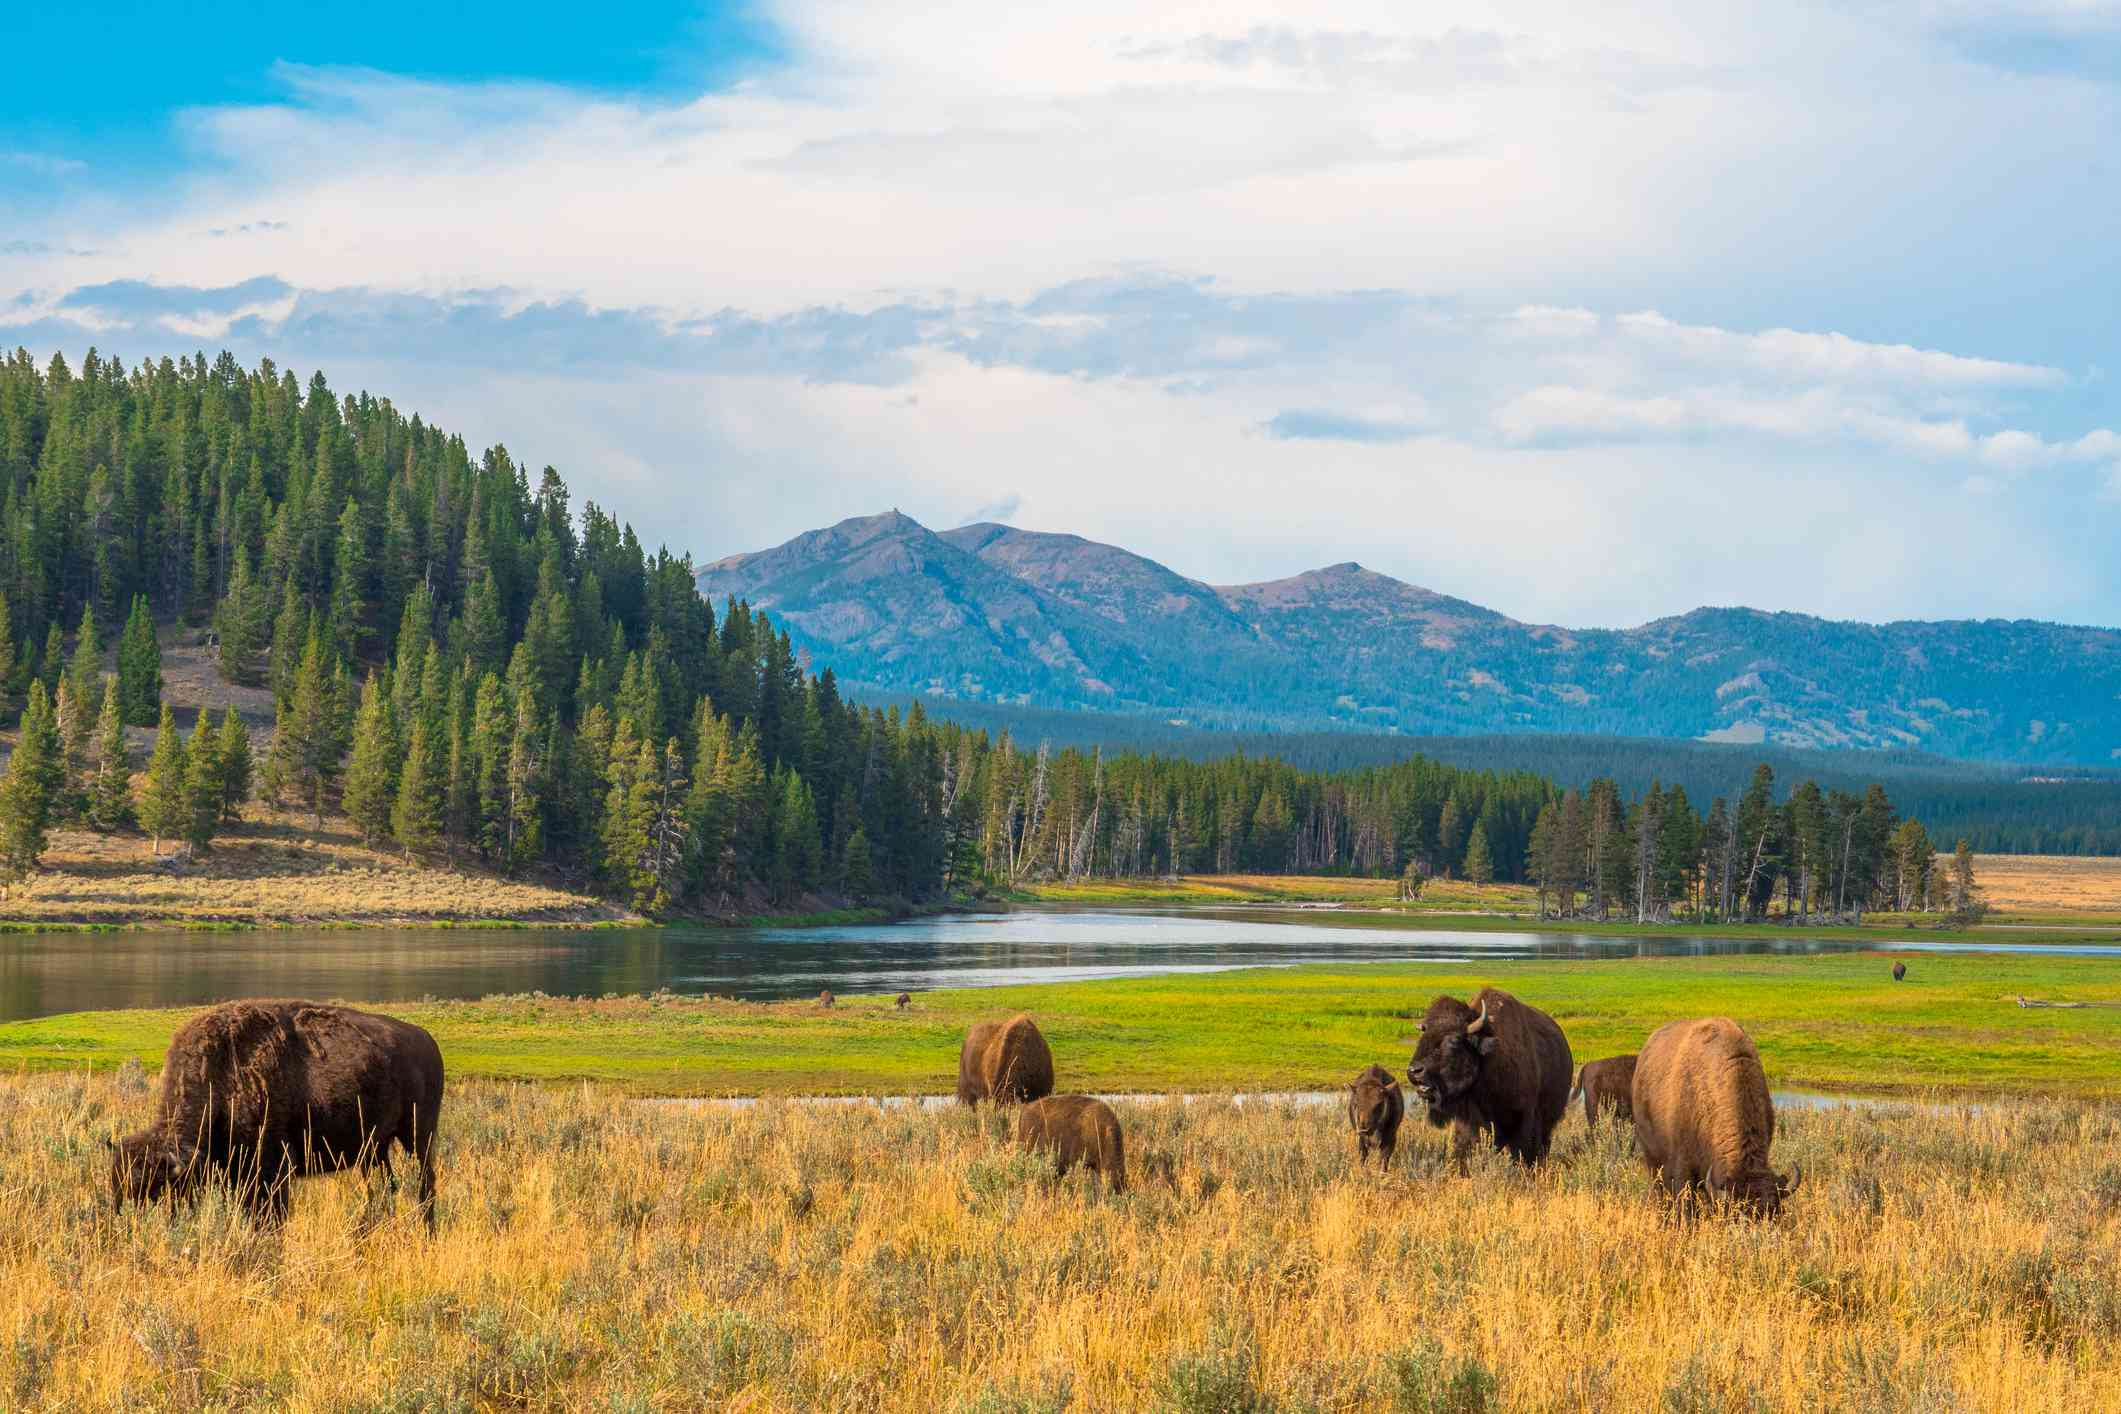 Buffalo grazing in a field with a waterway, a forest of evergreens, and mountains in the distance under a blue sky with white clouds at Hayden Valley, Yellowstone, National Park, Wyoming